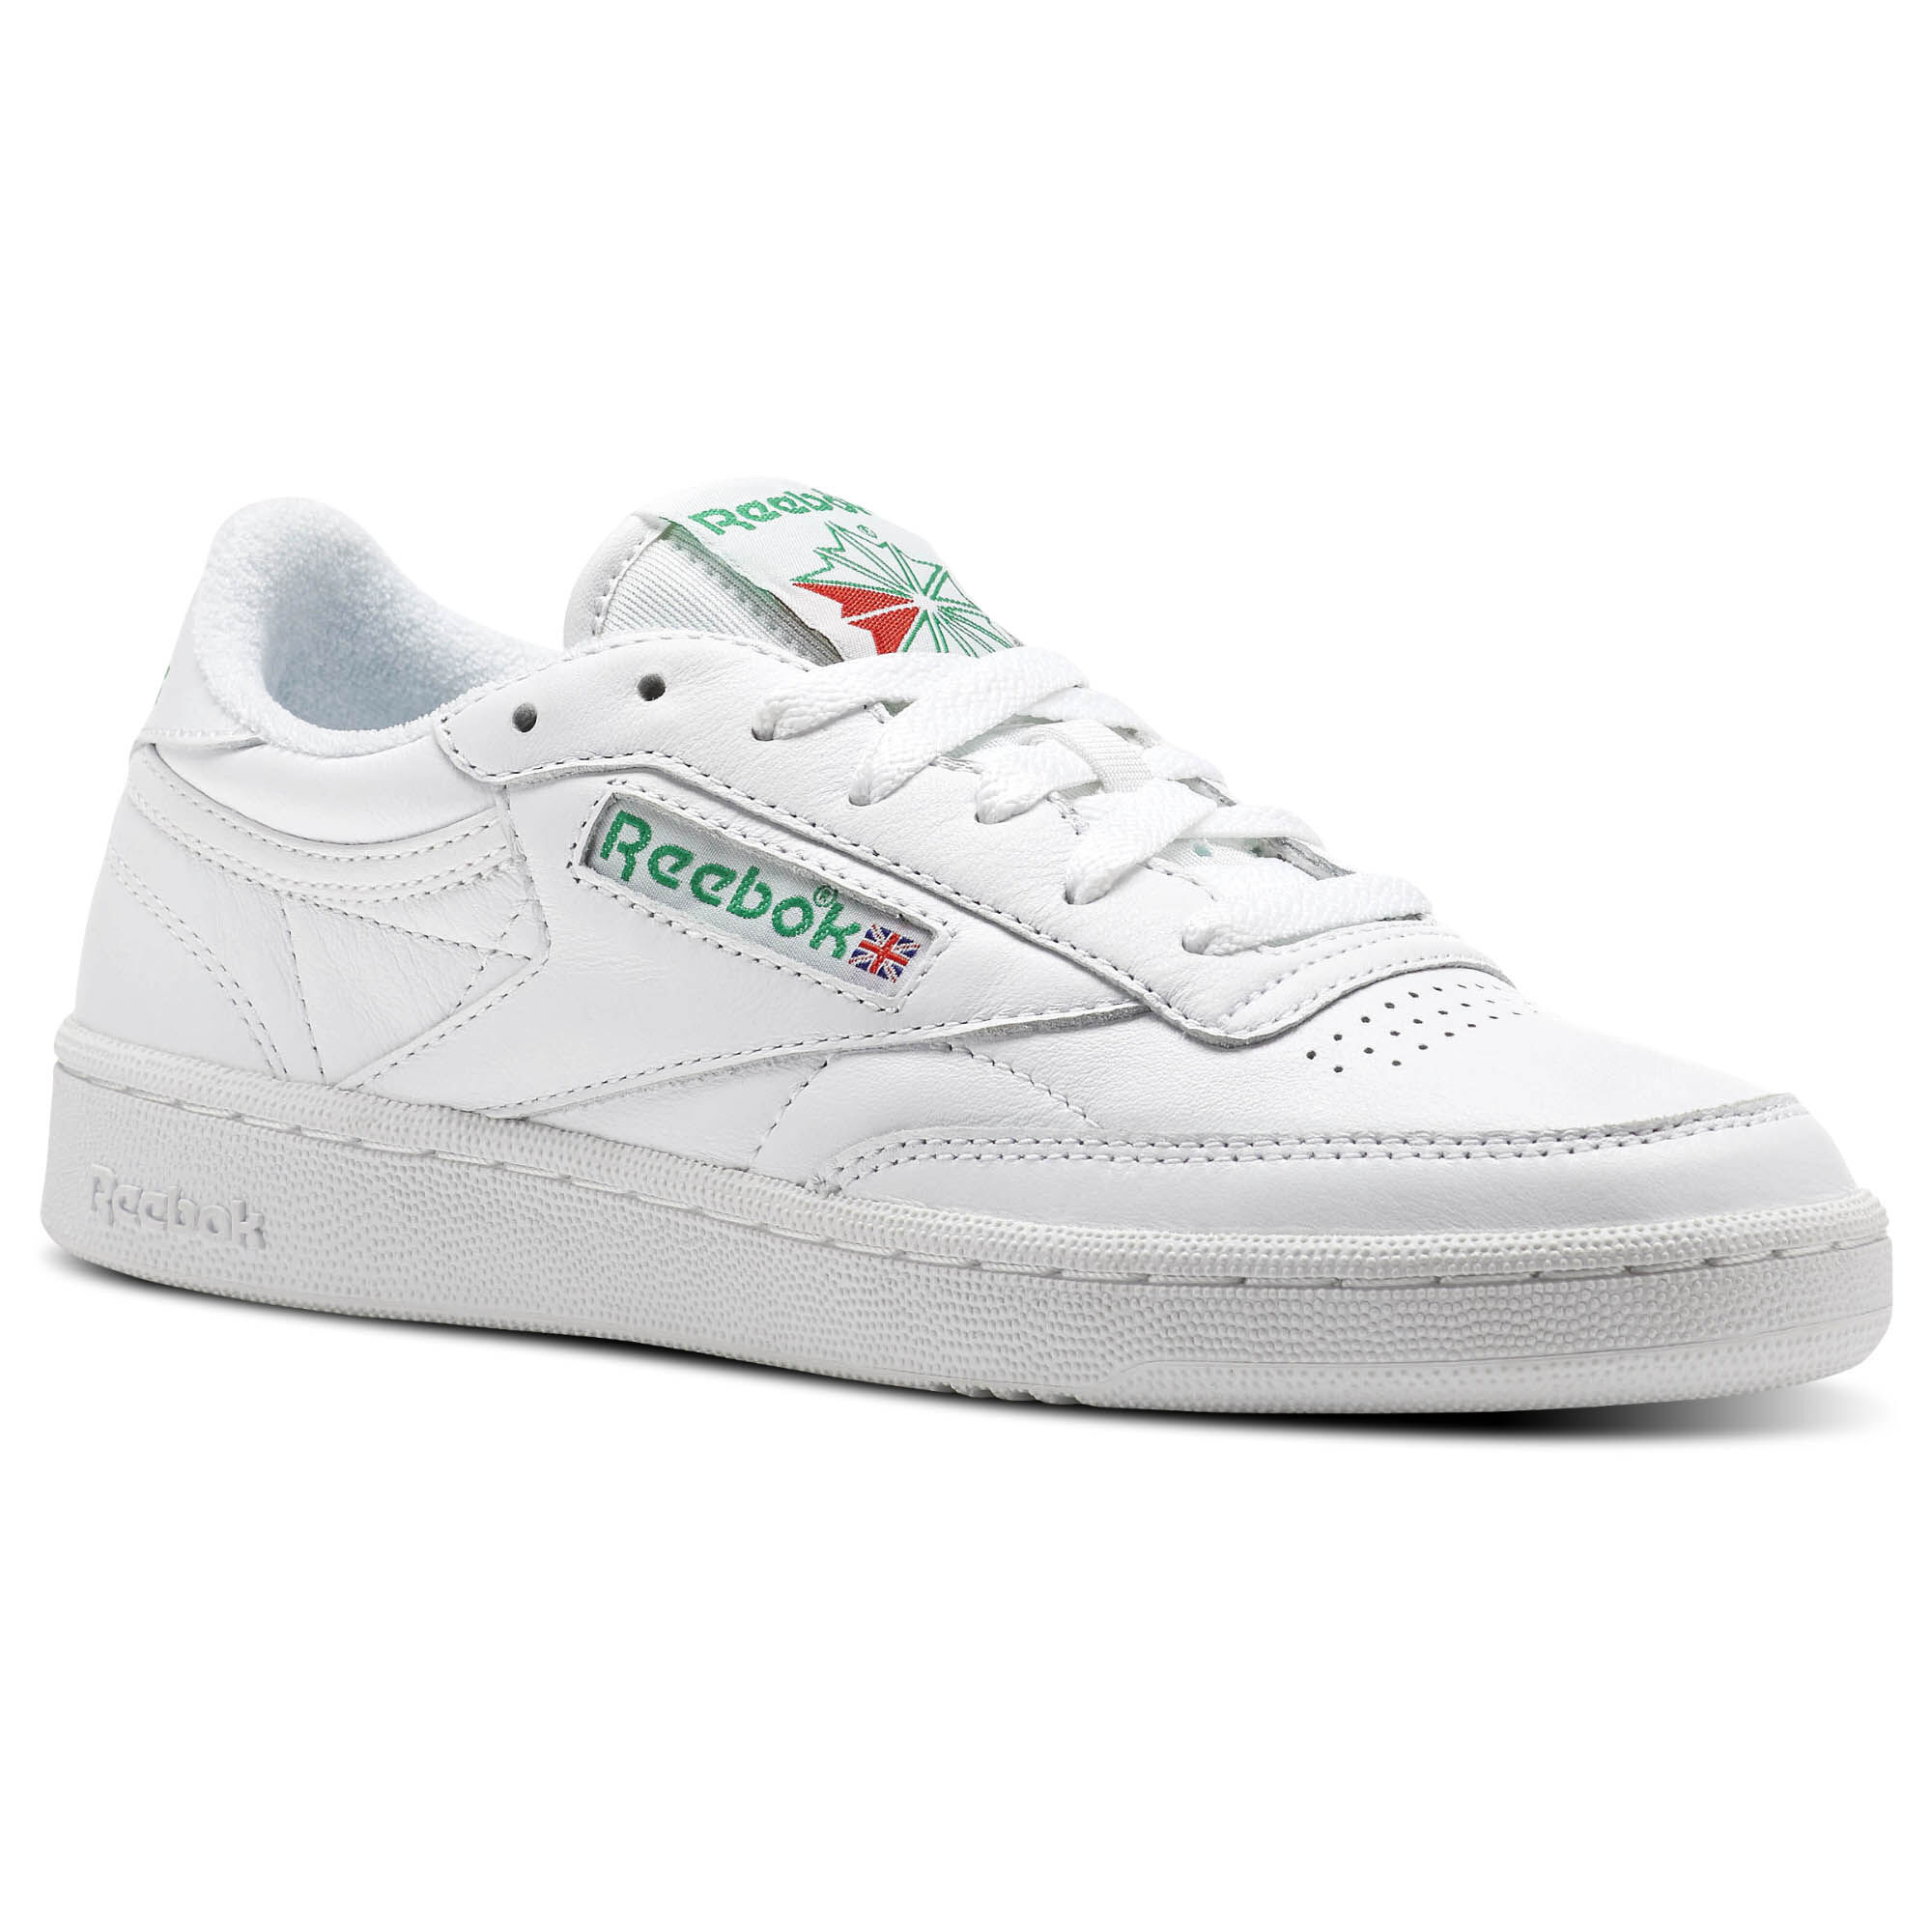 Womens Womens Club C 85 Archive Sneakers Reebok